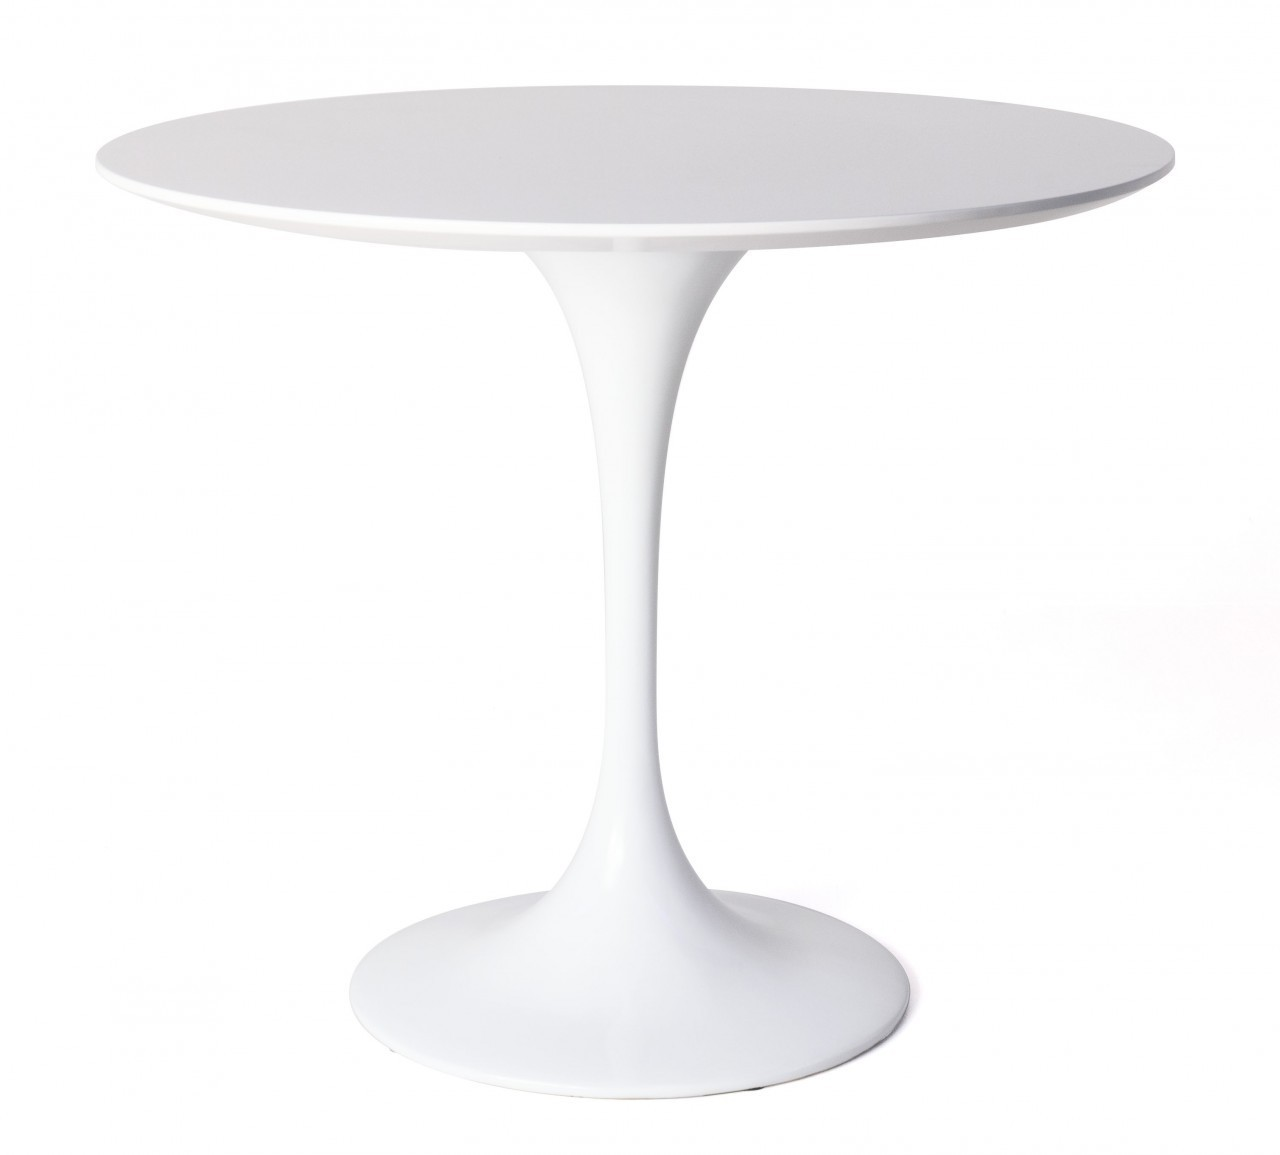 eero saarinen dining table tulip table cm design tables -  dining table tulip table cm